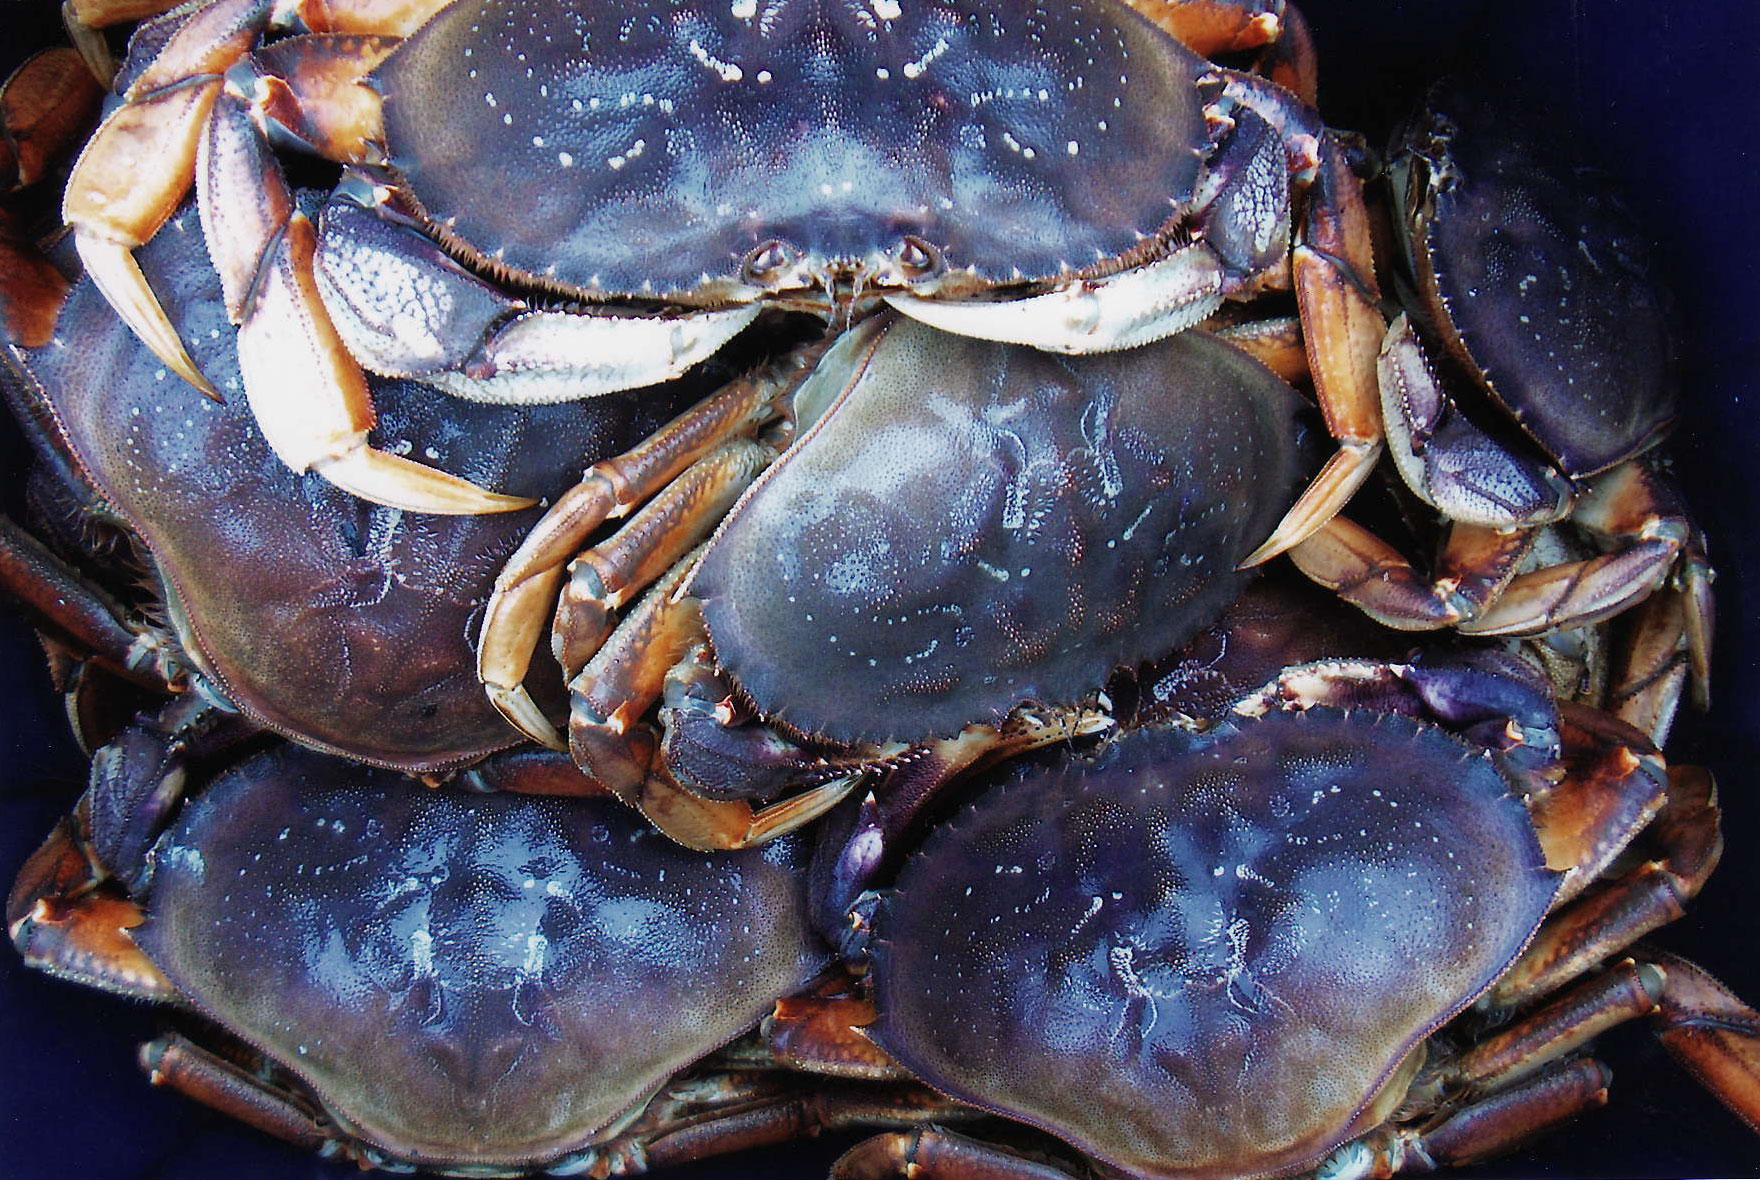 IMG_0005-crabs